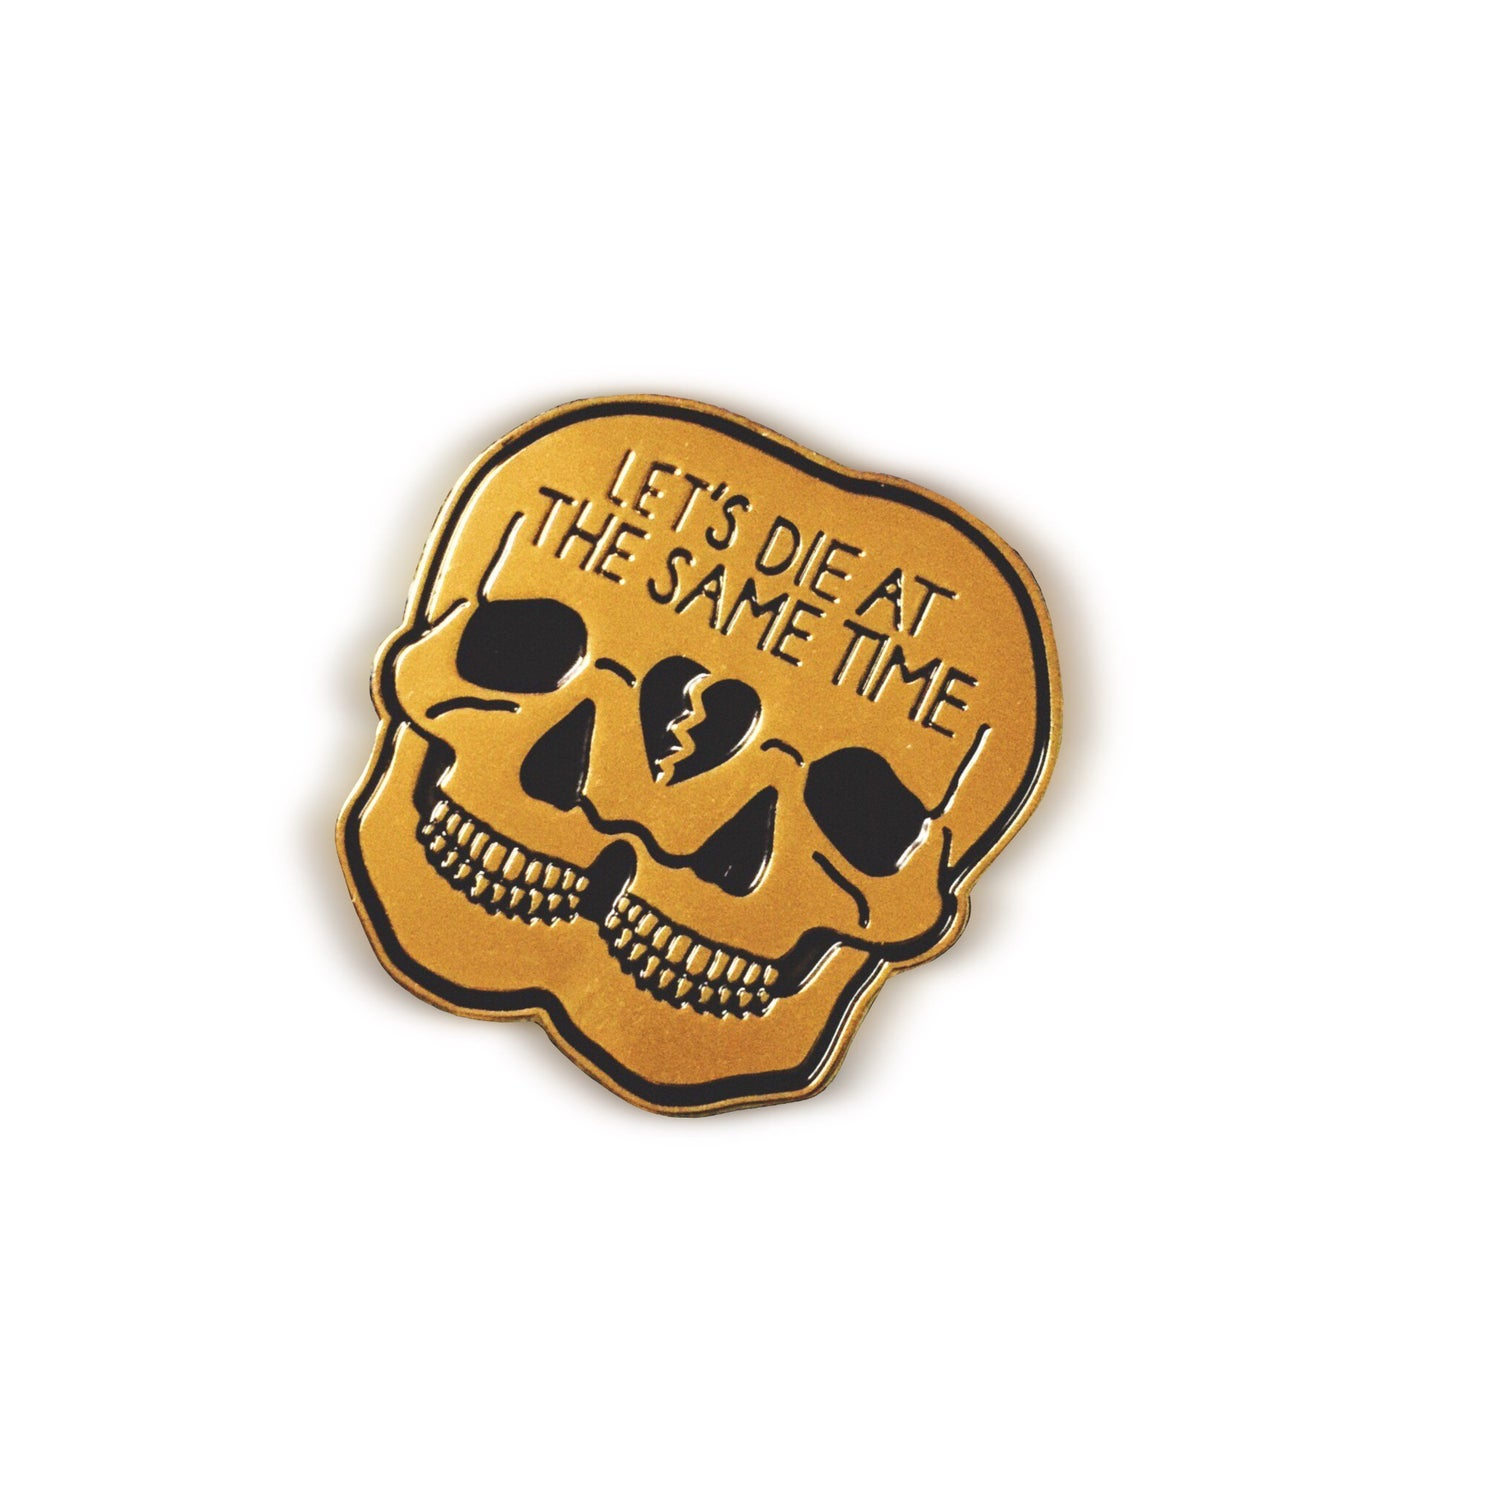 Image of Let's Die At The Same Time - Pin